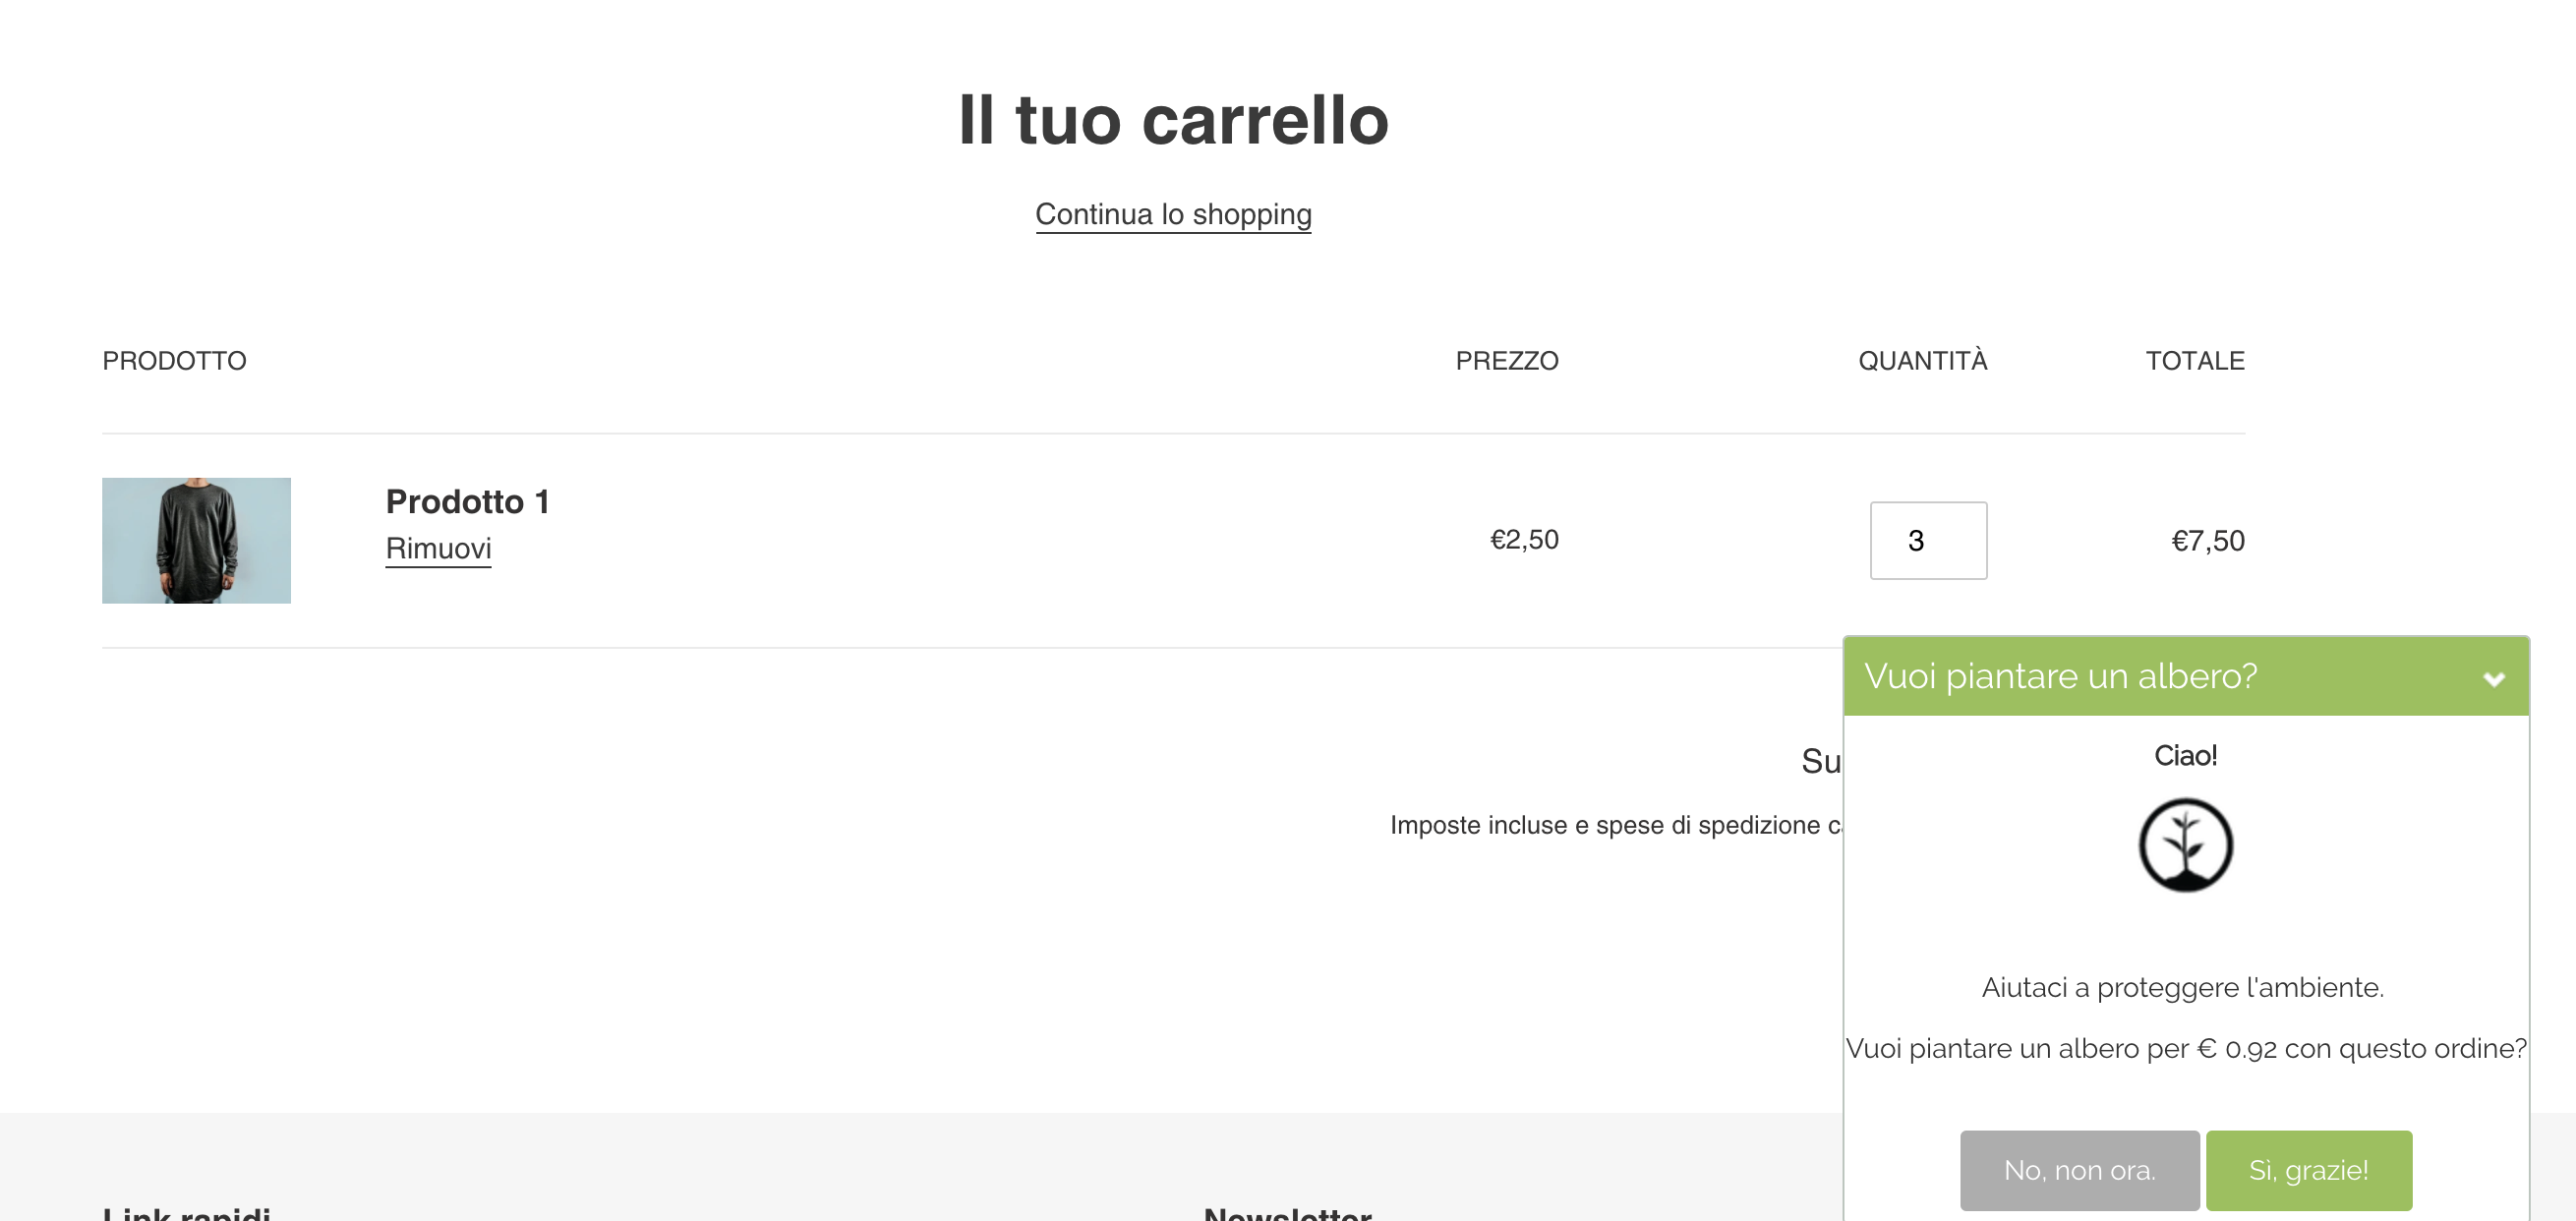 Esempio di come One Tree Planted sia profondamente integrata al checkout Shopify, con una finestra molto personalizzata